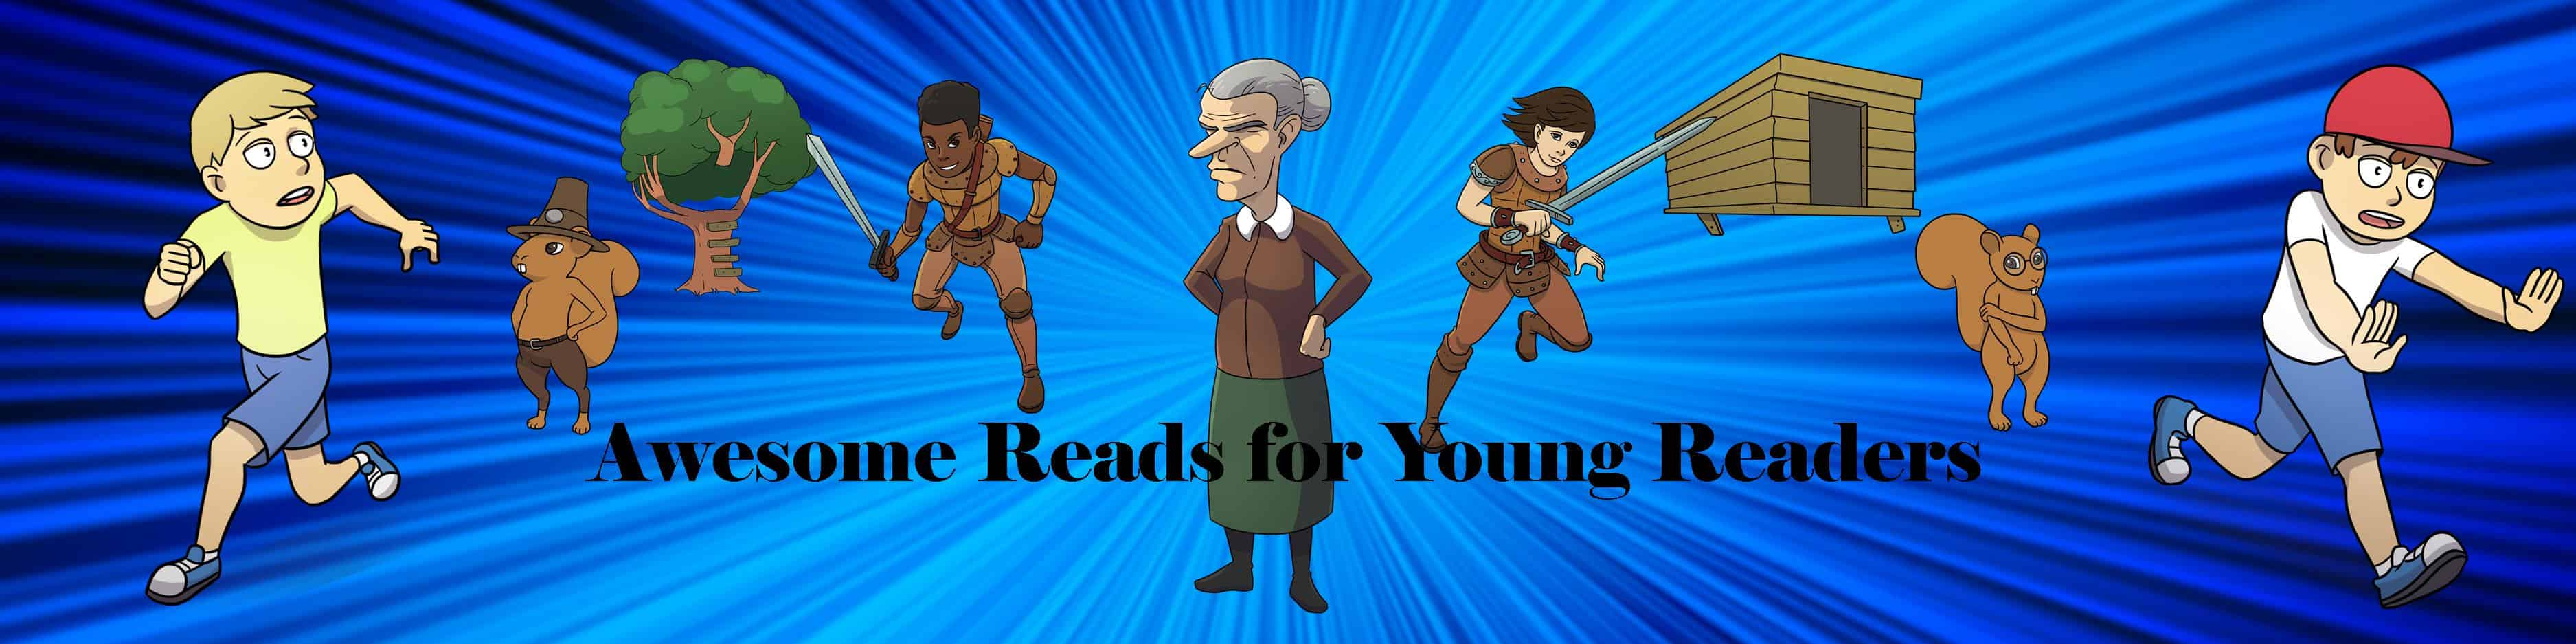 Awesome Reads for Young Readers!